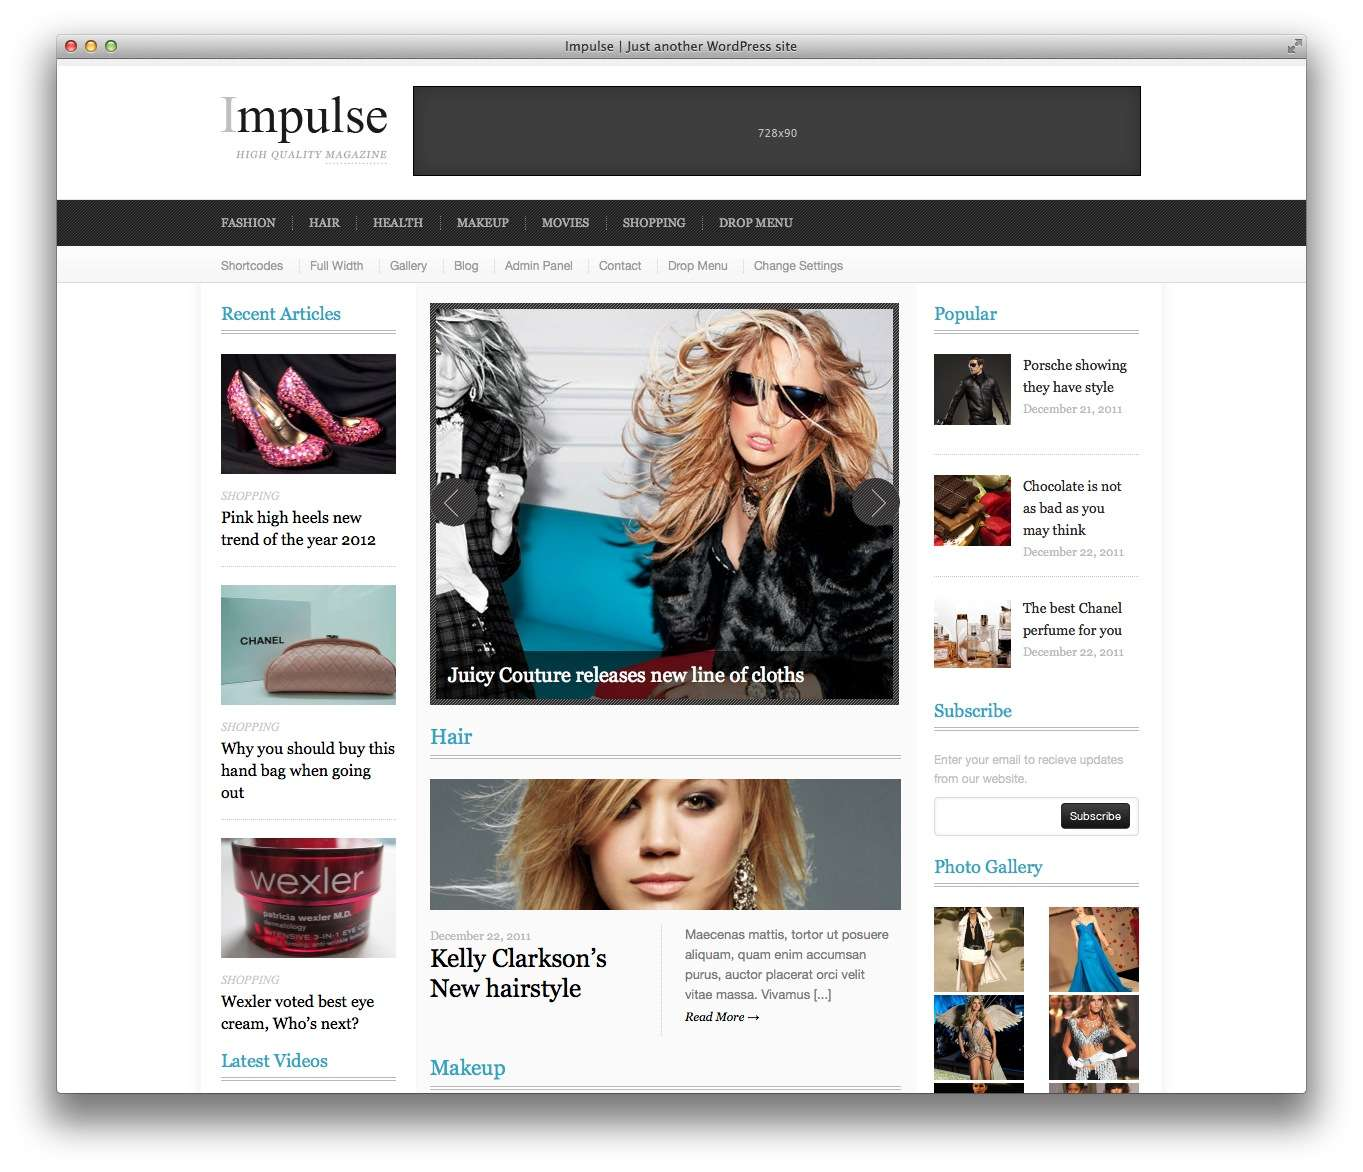 WordPress шаблоны для Fashion блогов и журналов11